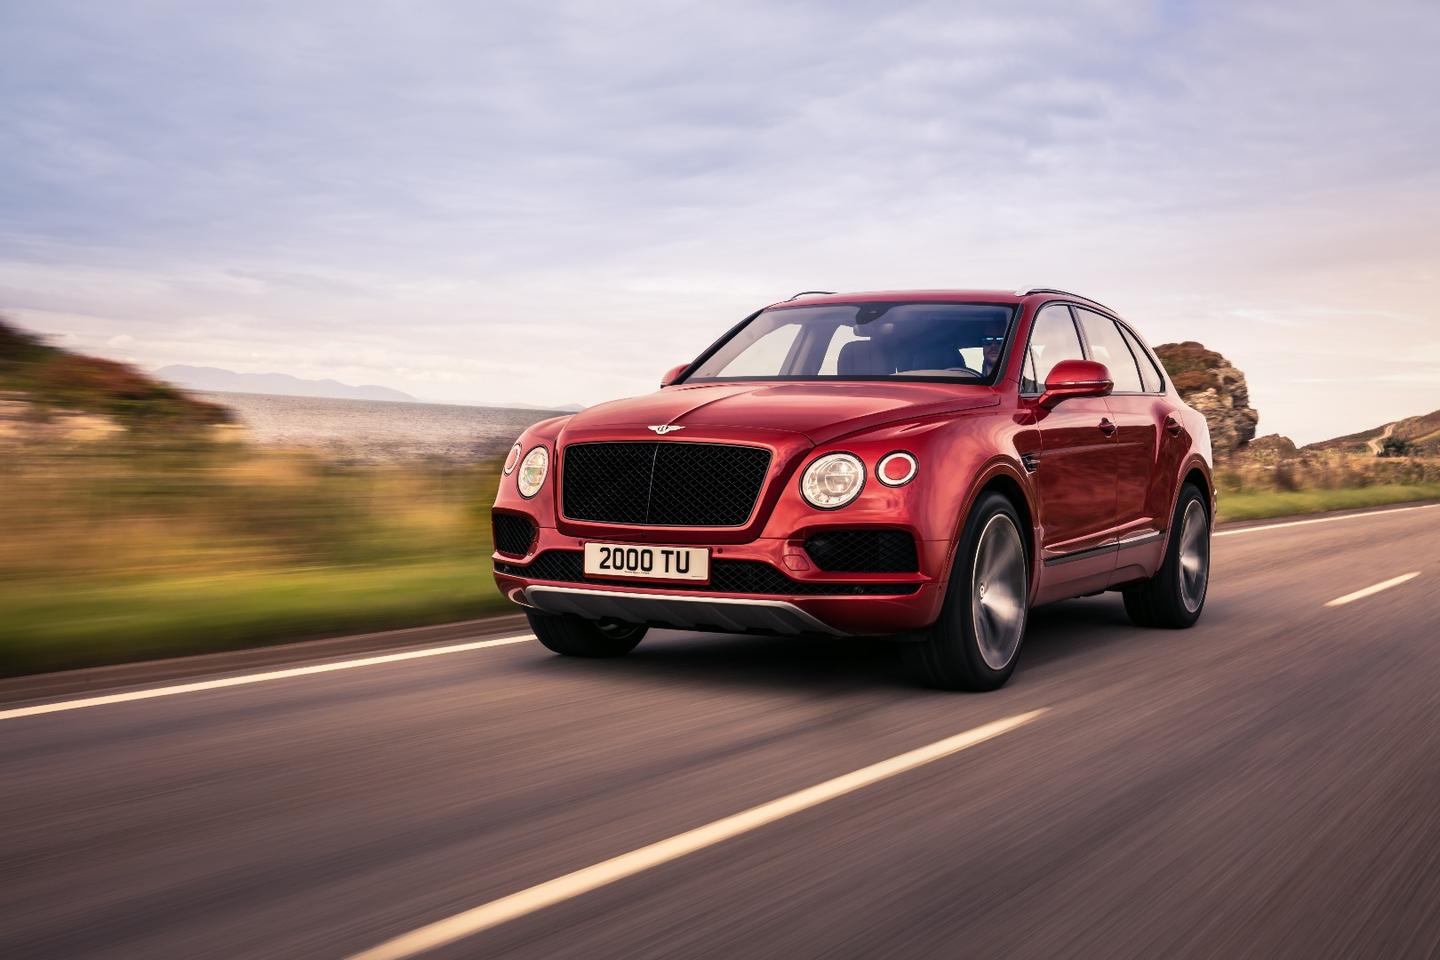 The Bentley Bentayga V8 has a black and chrome grille